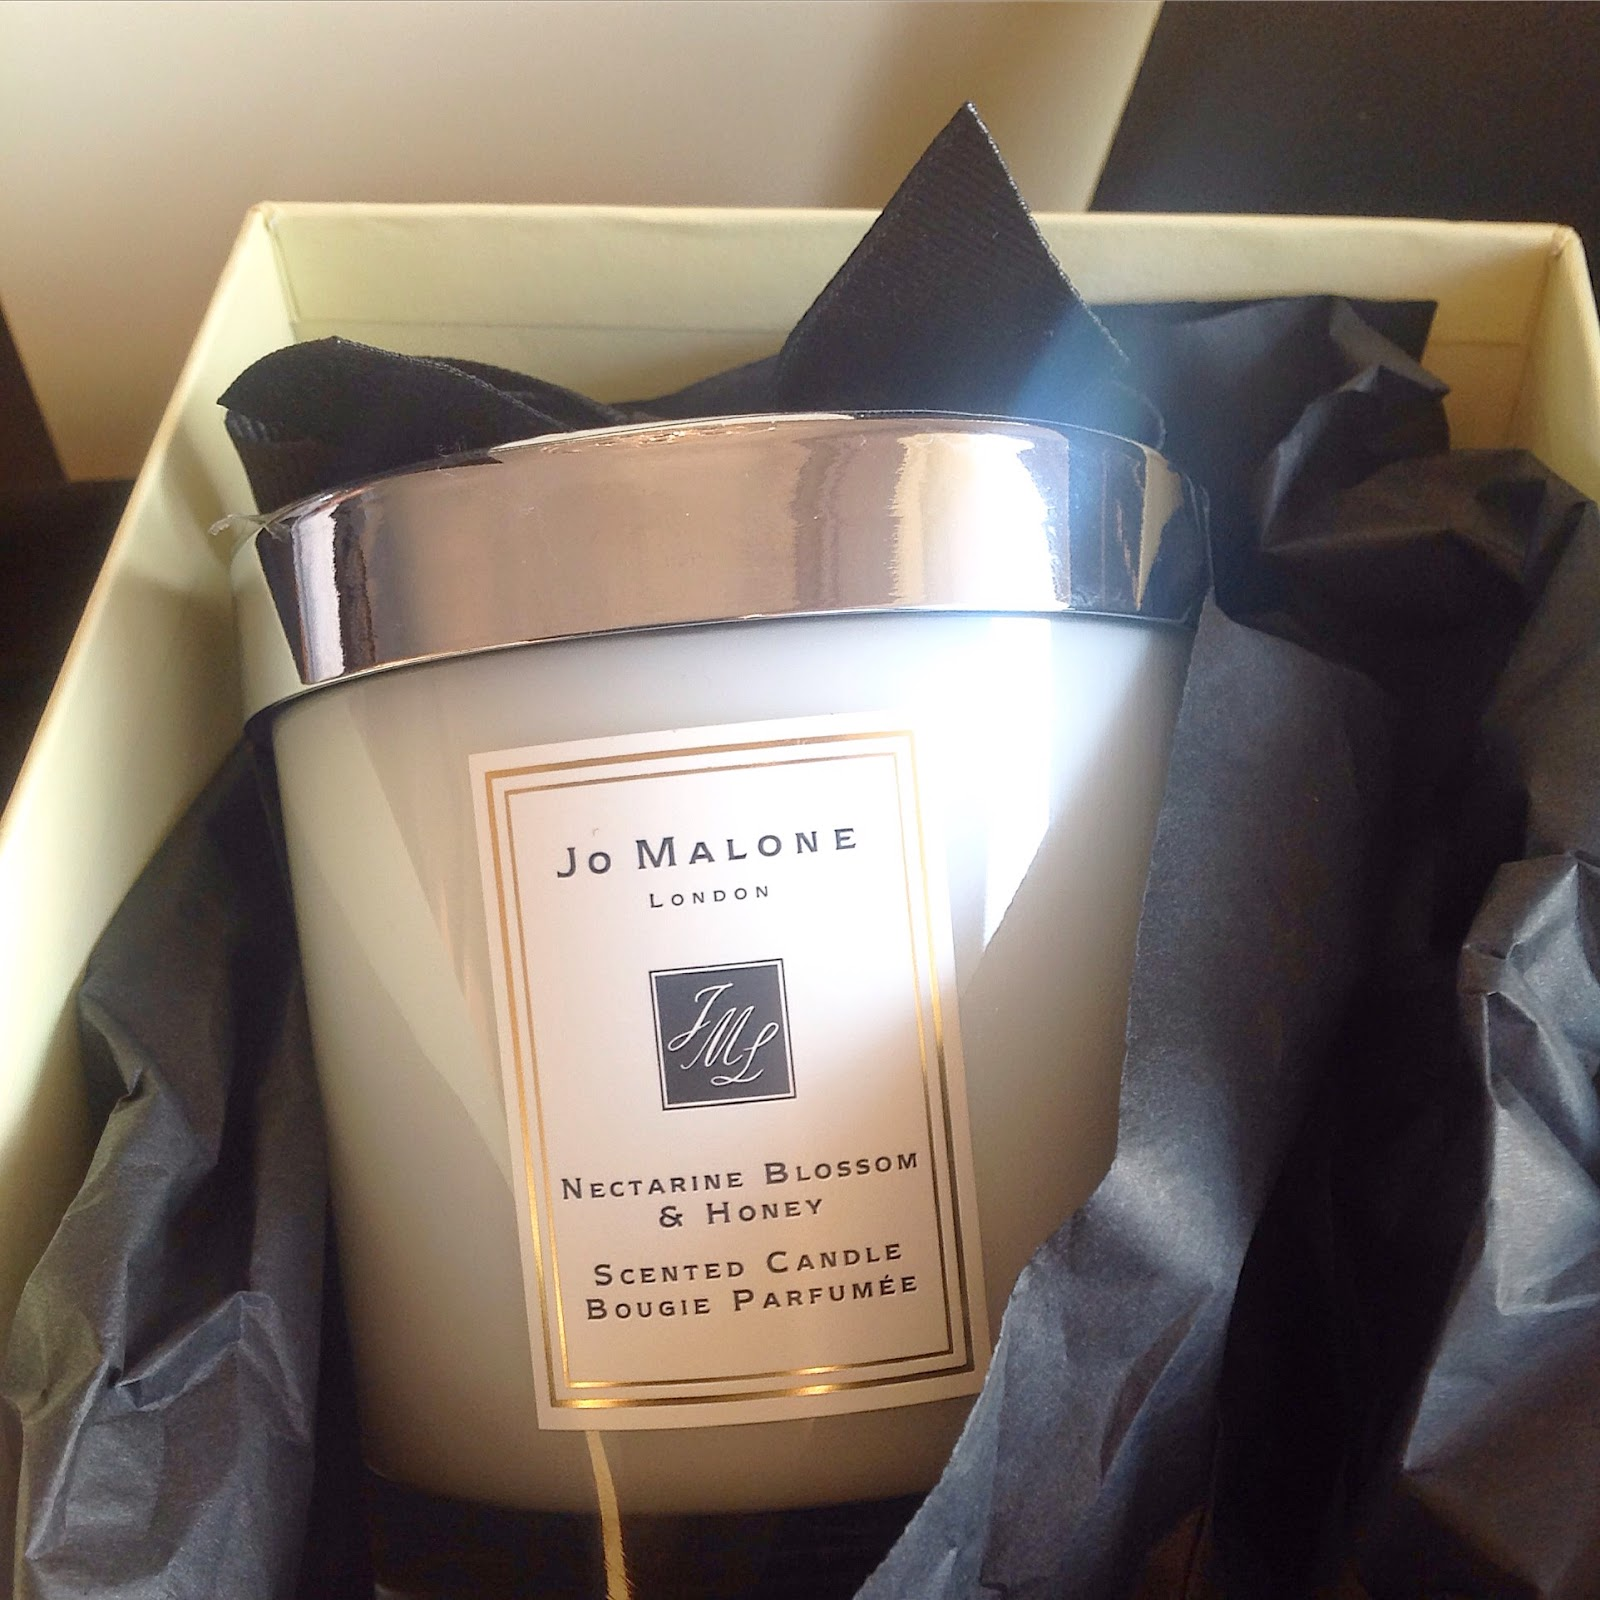 Nectarine Blossom and Honey Jo Malone Candle